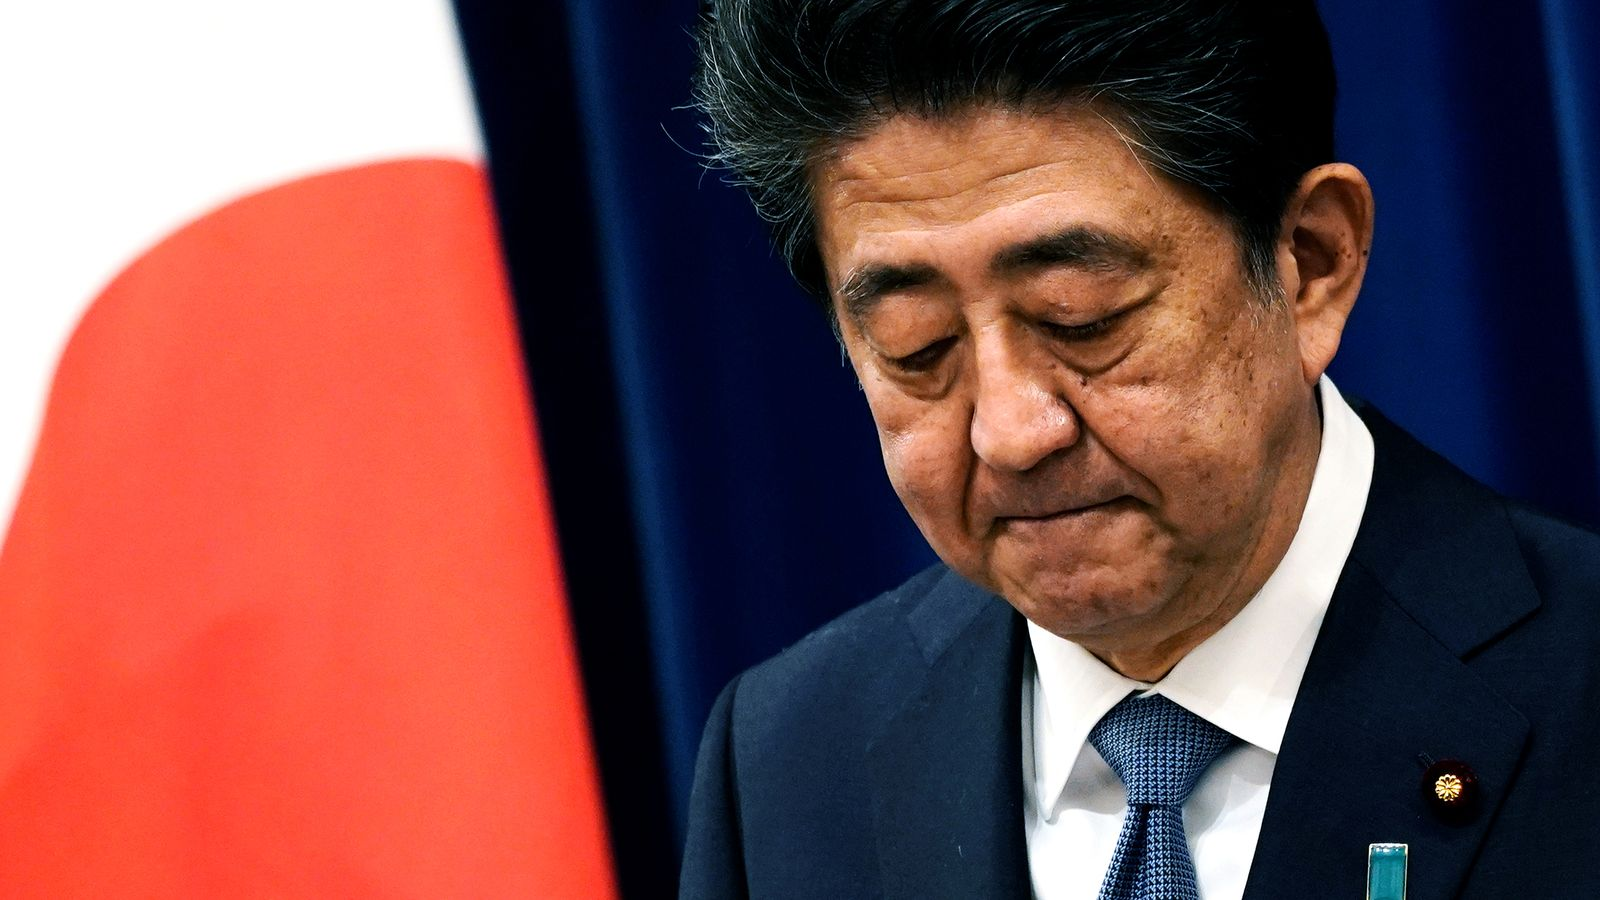 Japanese Prime Minister Shinzo Abe to resign